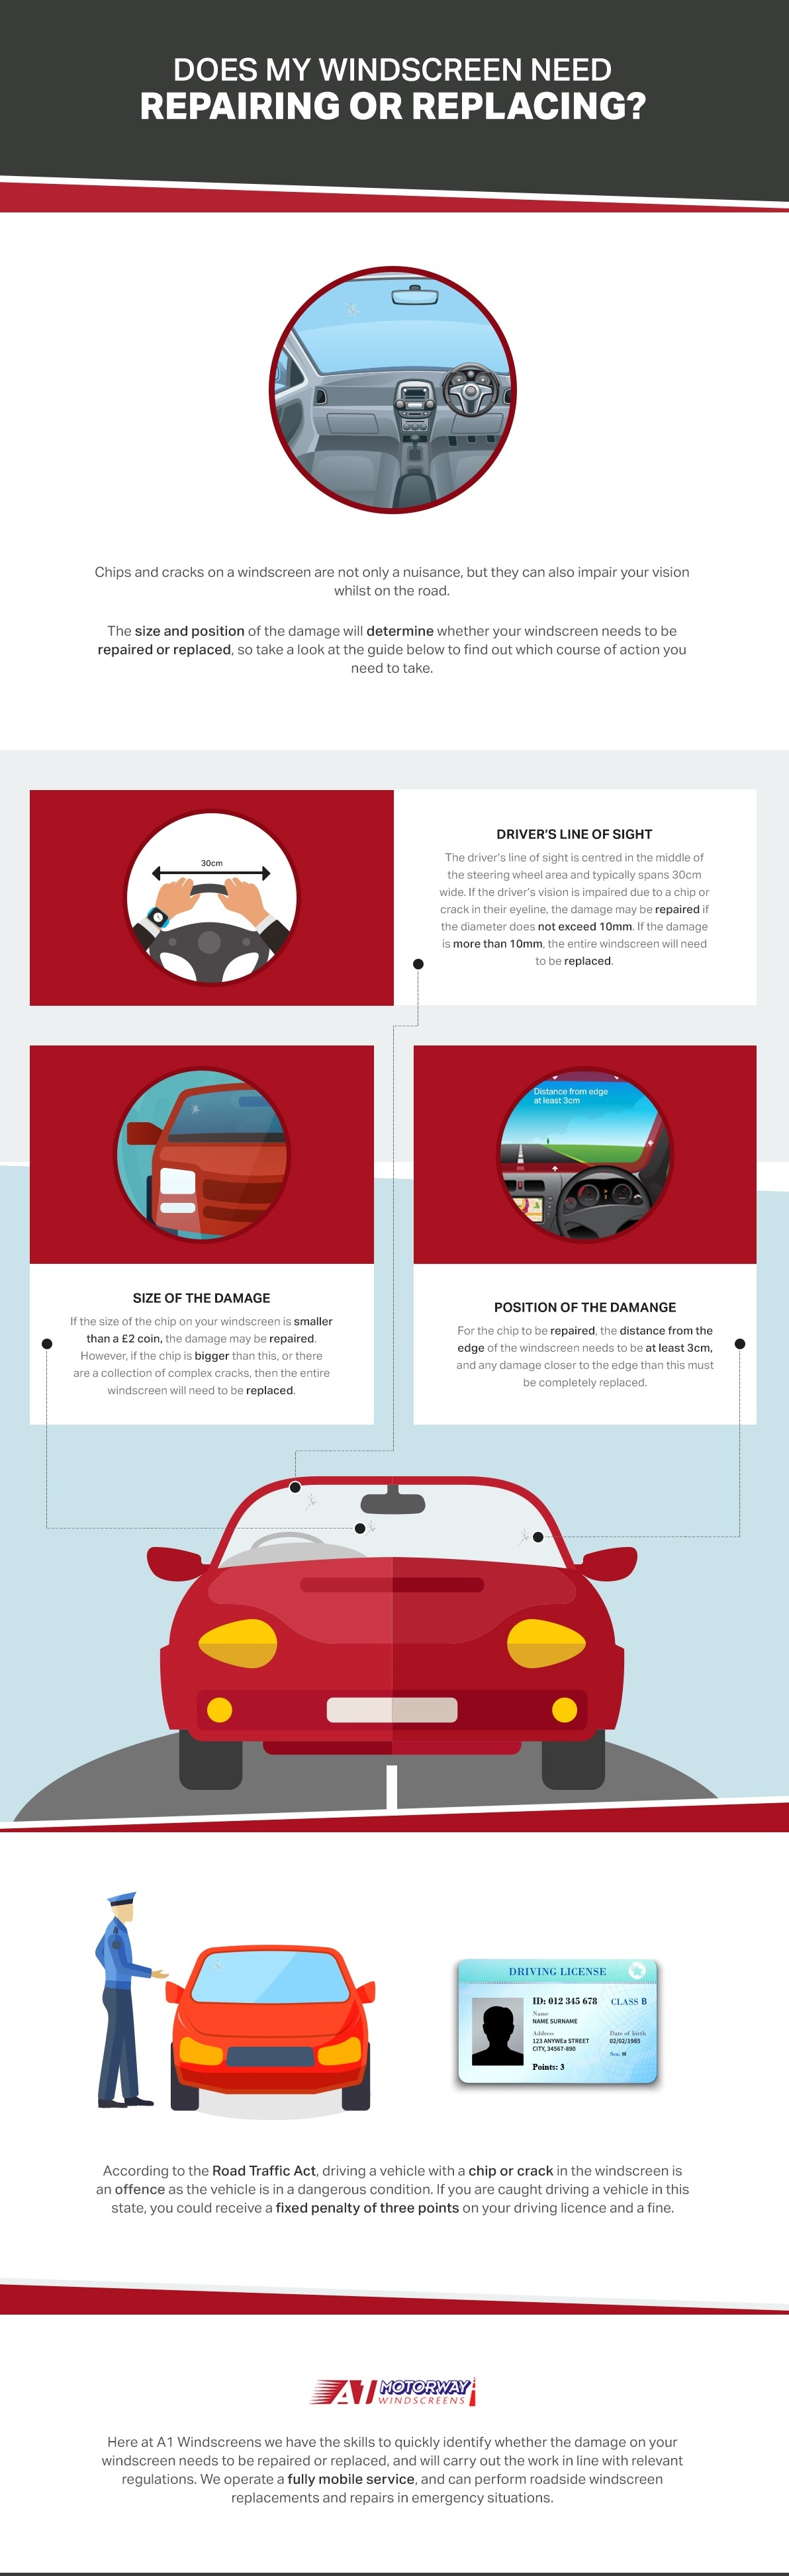 windscreen-replace-repair-infographic